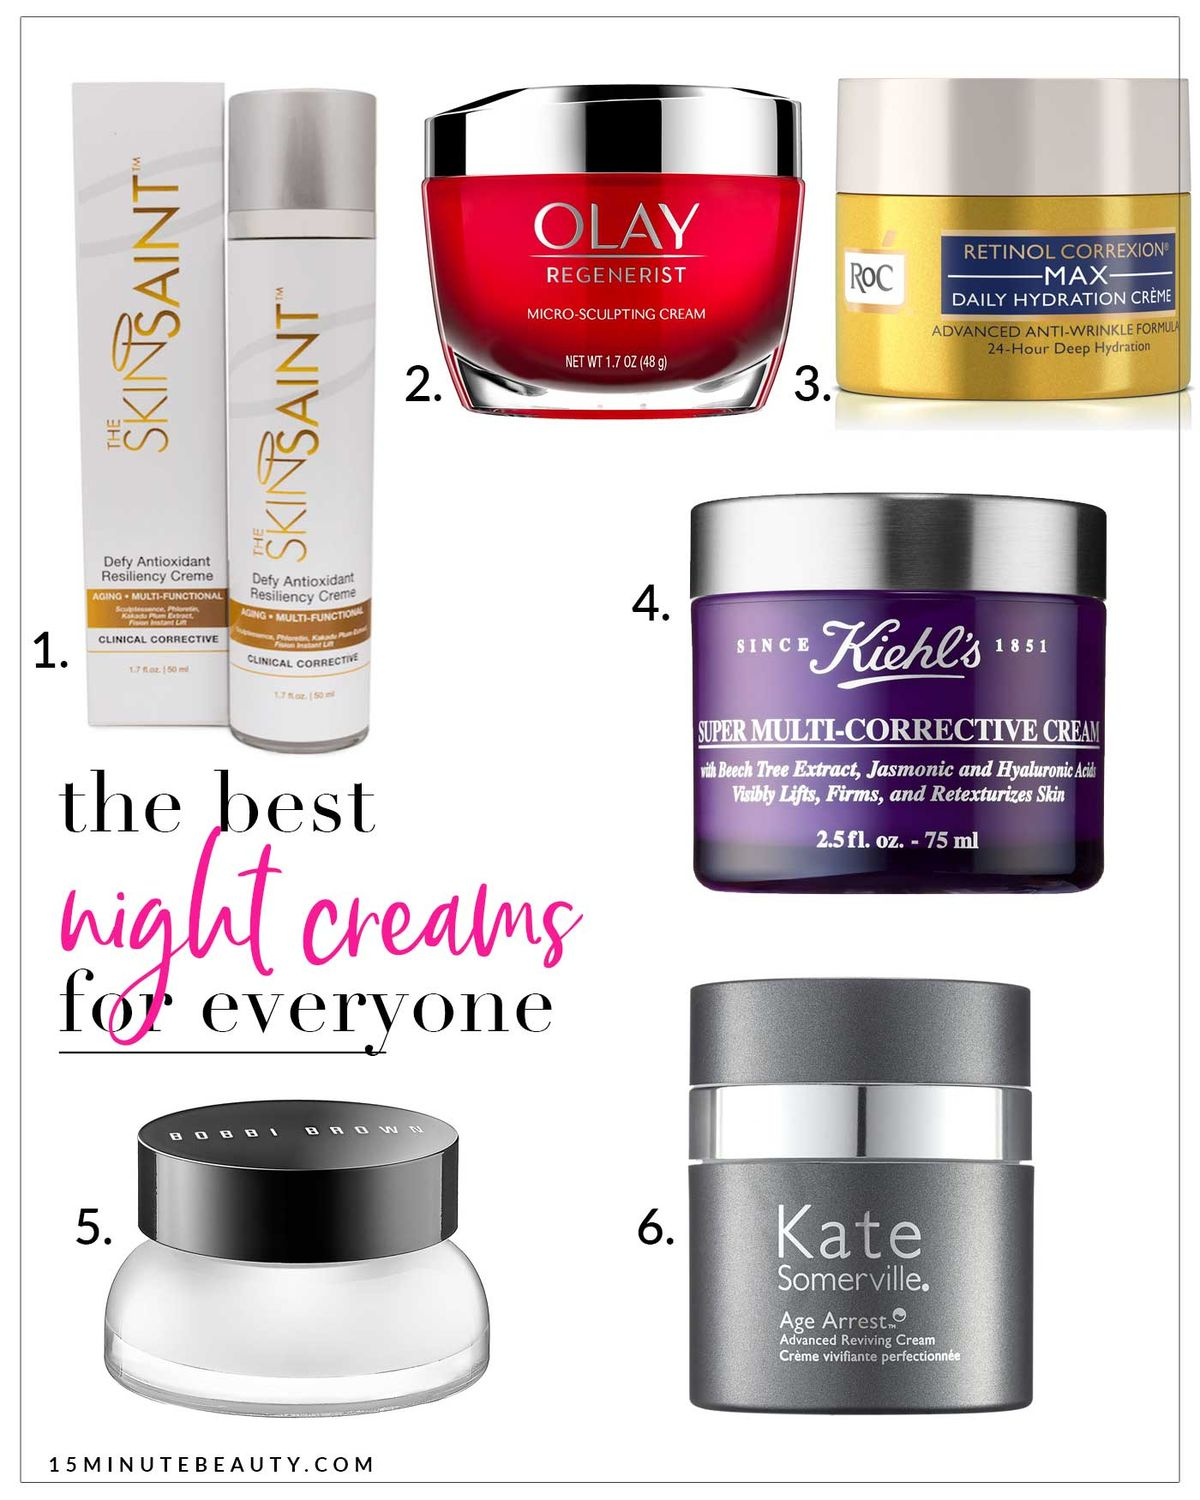 These are the best night creams for antiaging and wrinkles! They target everything but are still gentle enough for anyone to use every night.